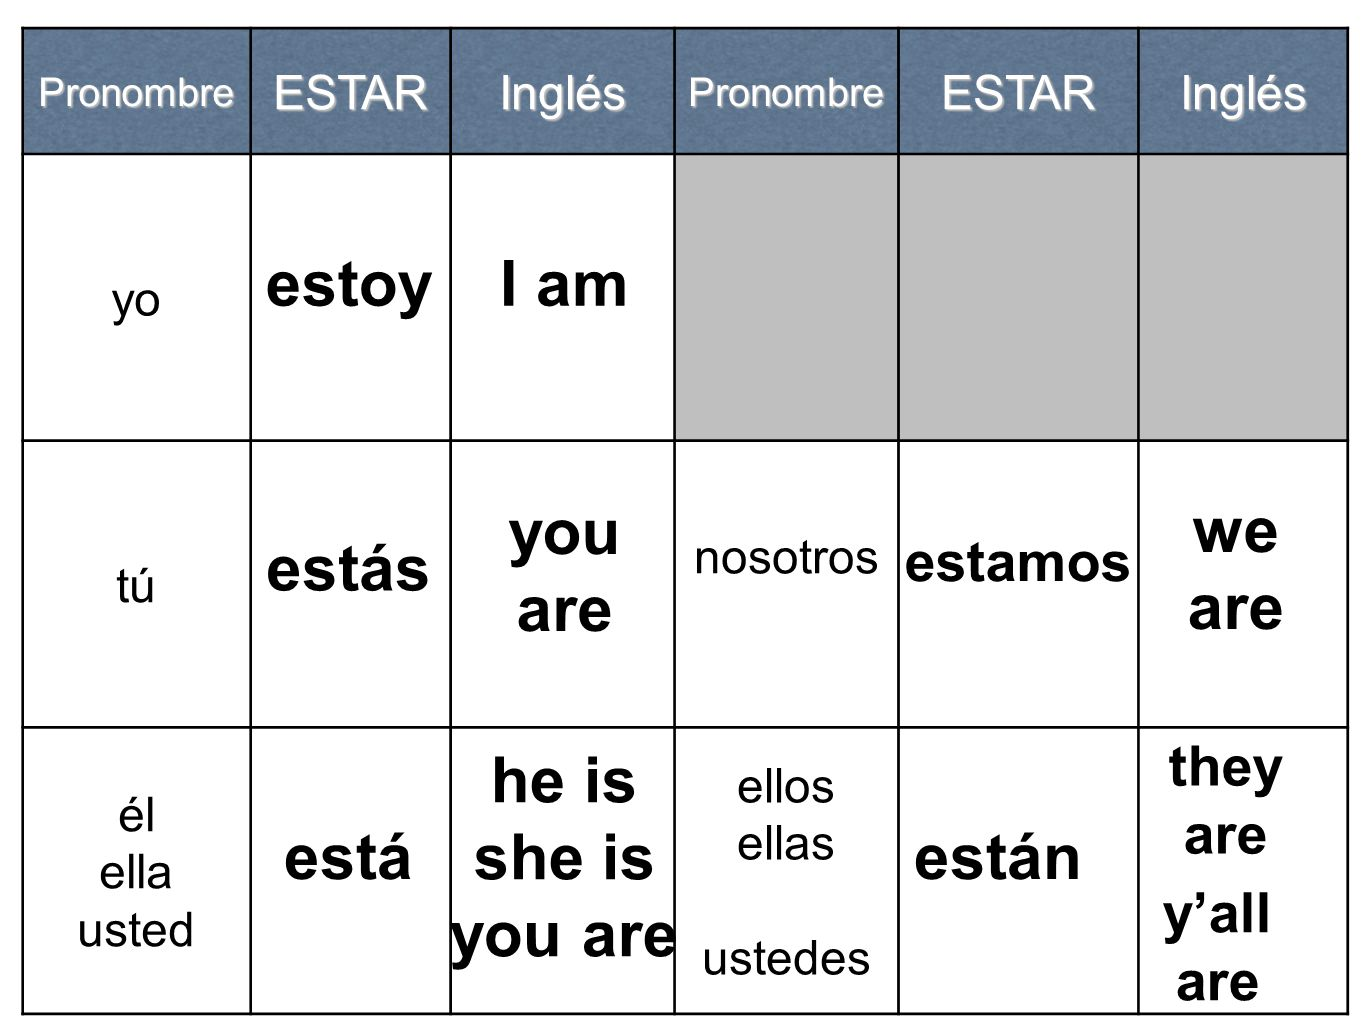 estoy I am you are we are estás he is she is you are está están